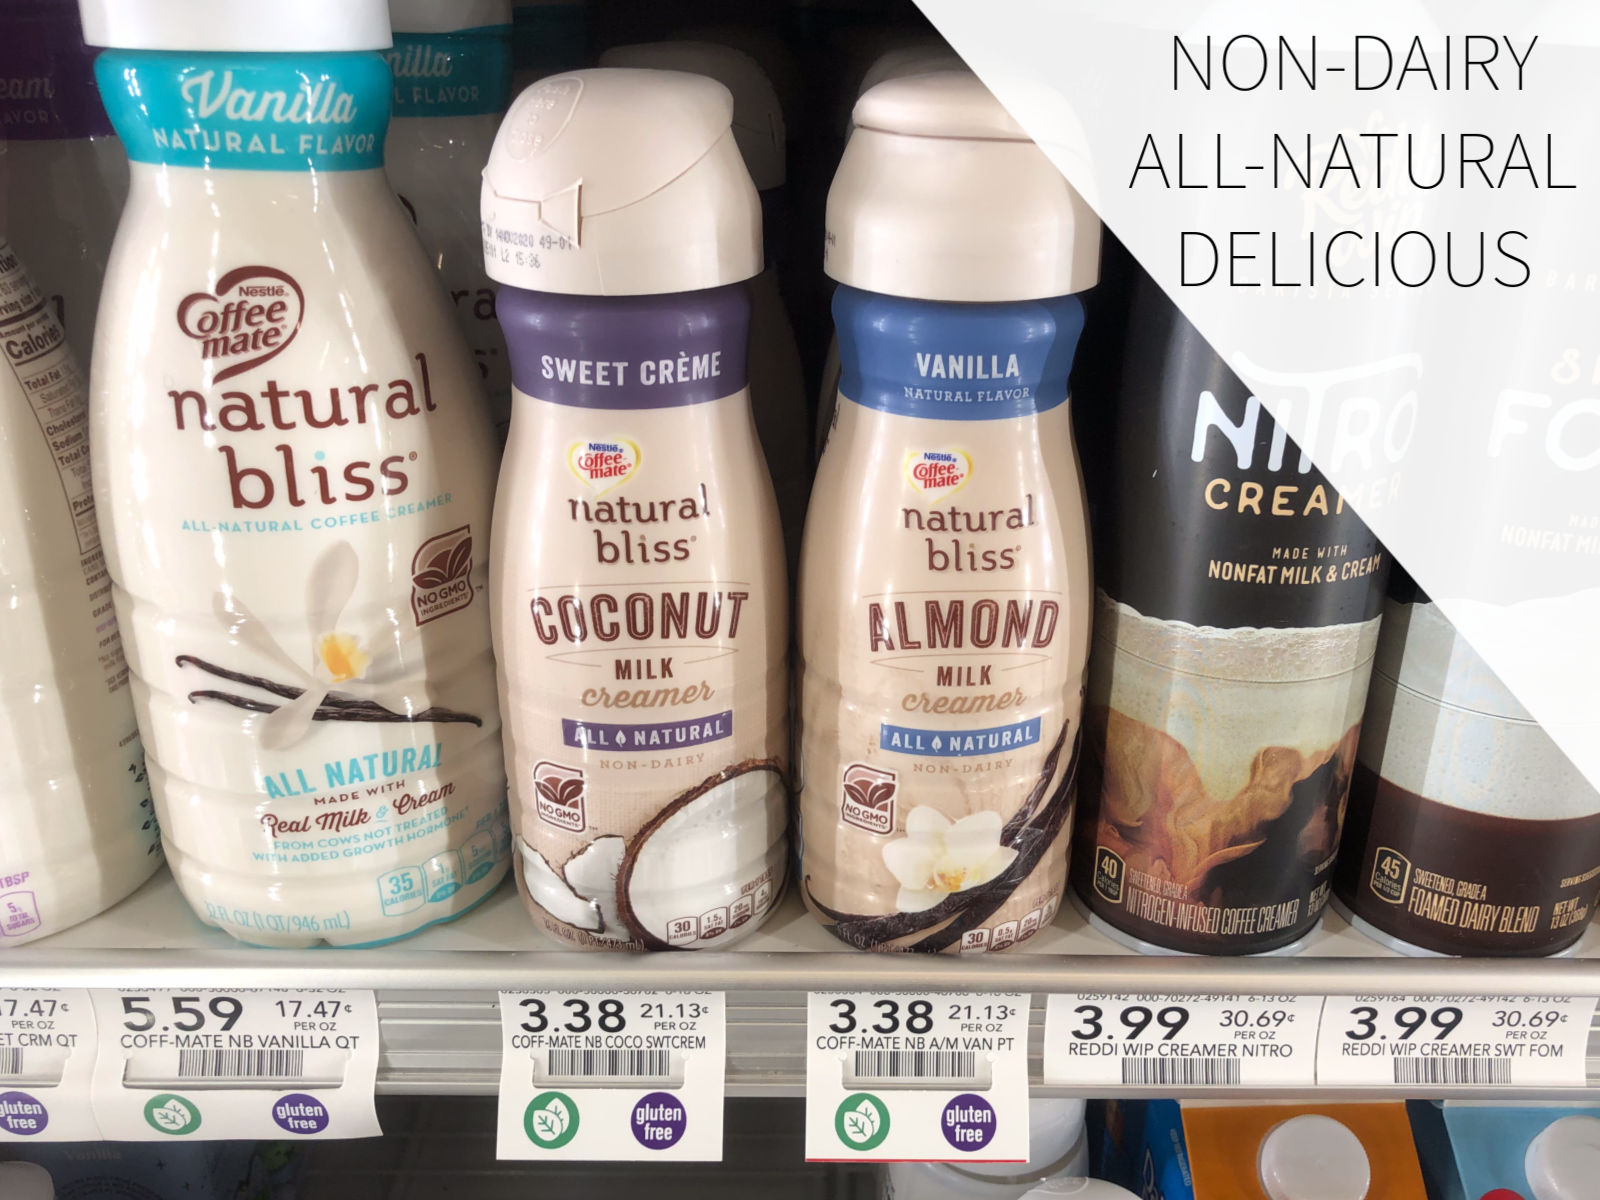 Try natural bliss® Sweet Crème Coconut Milk & natural bliss® Vanilla Almond Milk & Enjoy All-Natural, Non-Dairy Deliciousness! on I Heart Publix